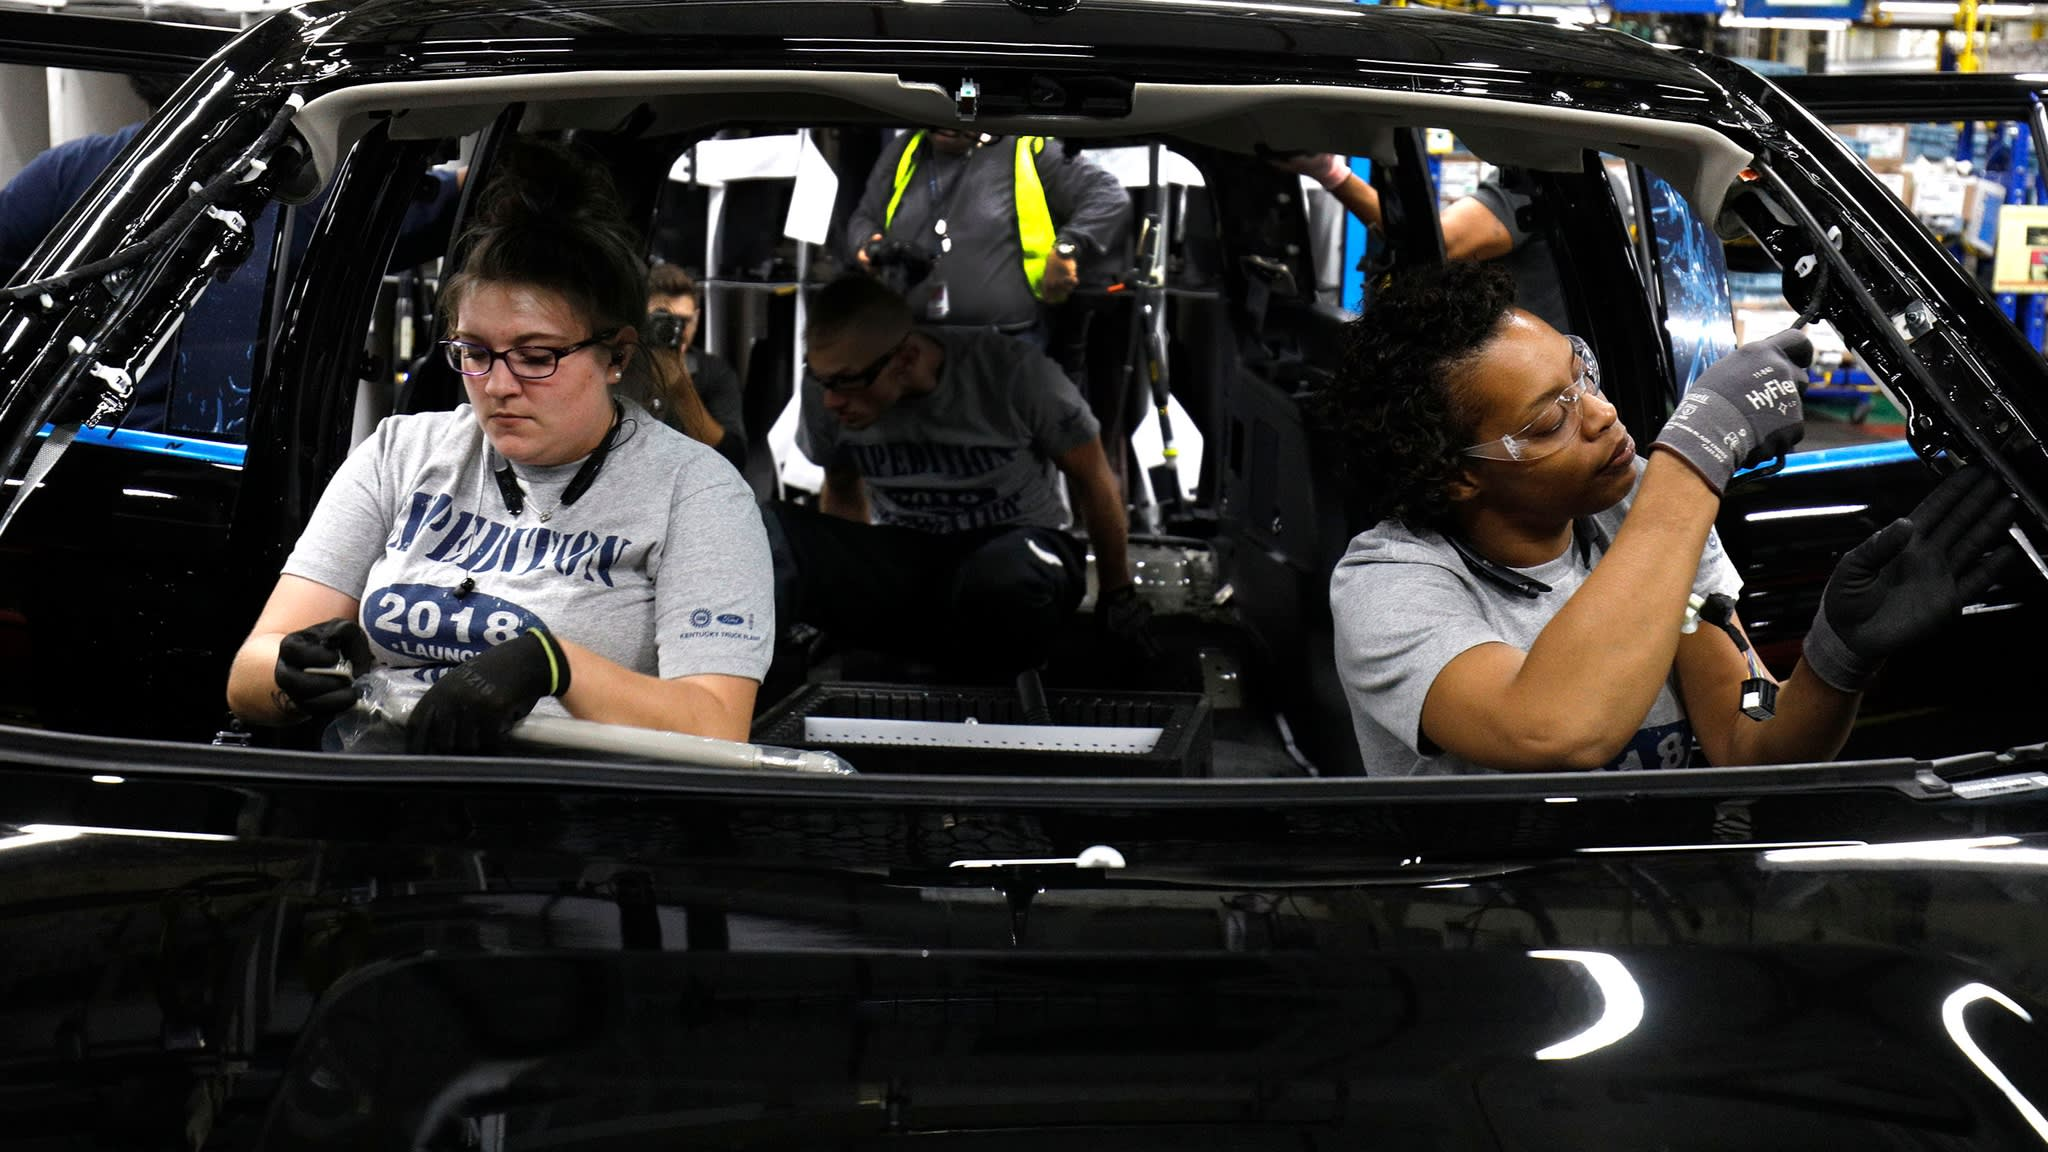 US economy adds 313,000 jobs, wage growth cools